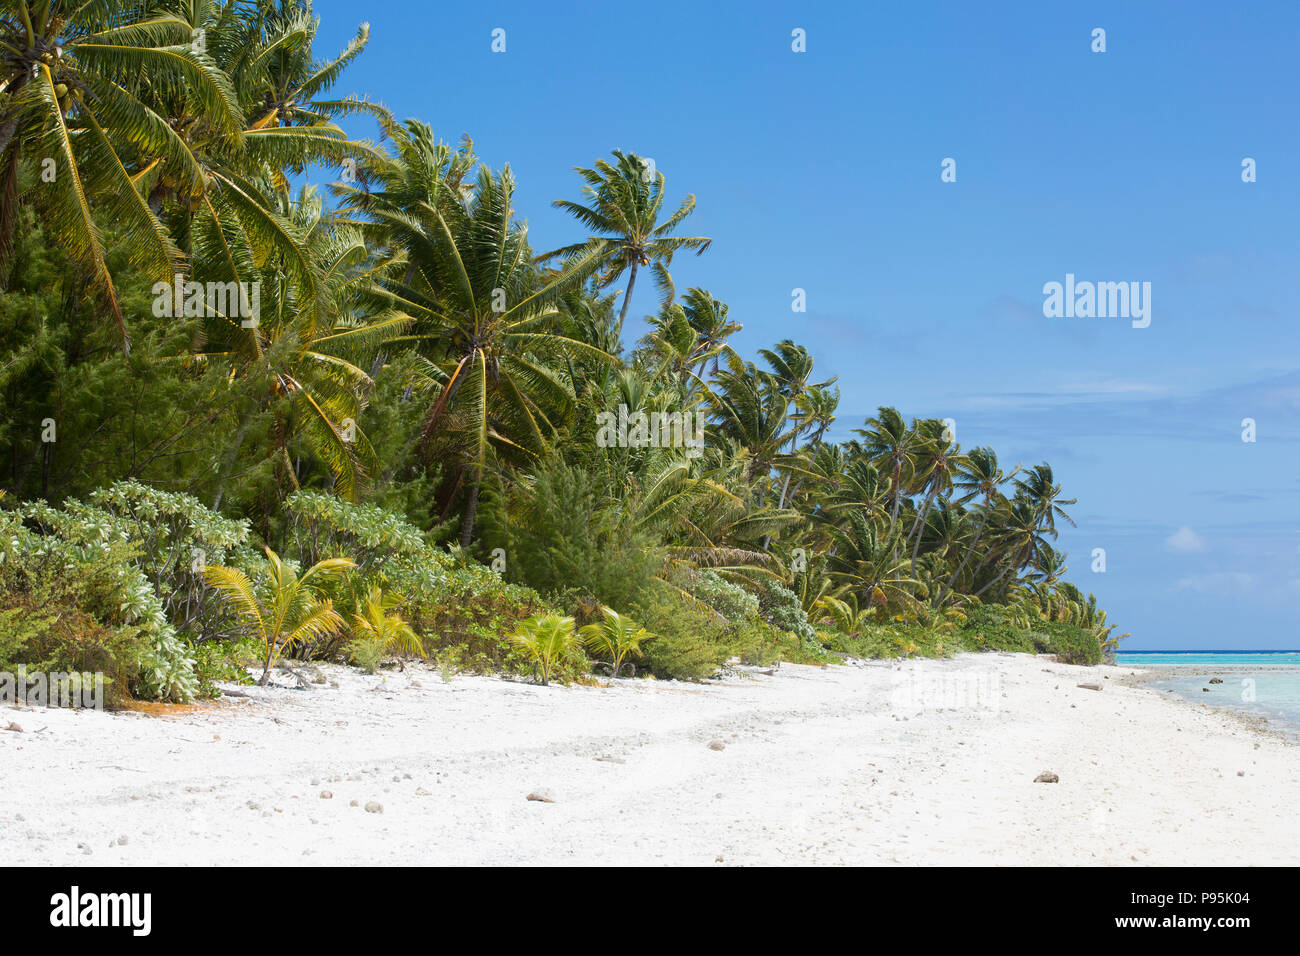 Beach on Palmerston Island, Cook Islands - Stock Image